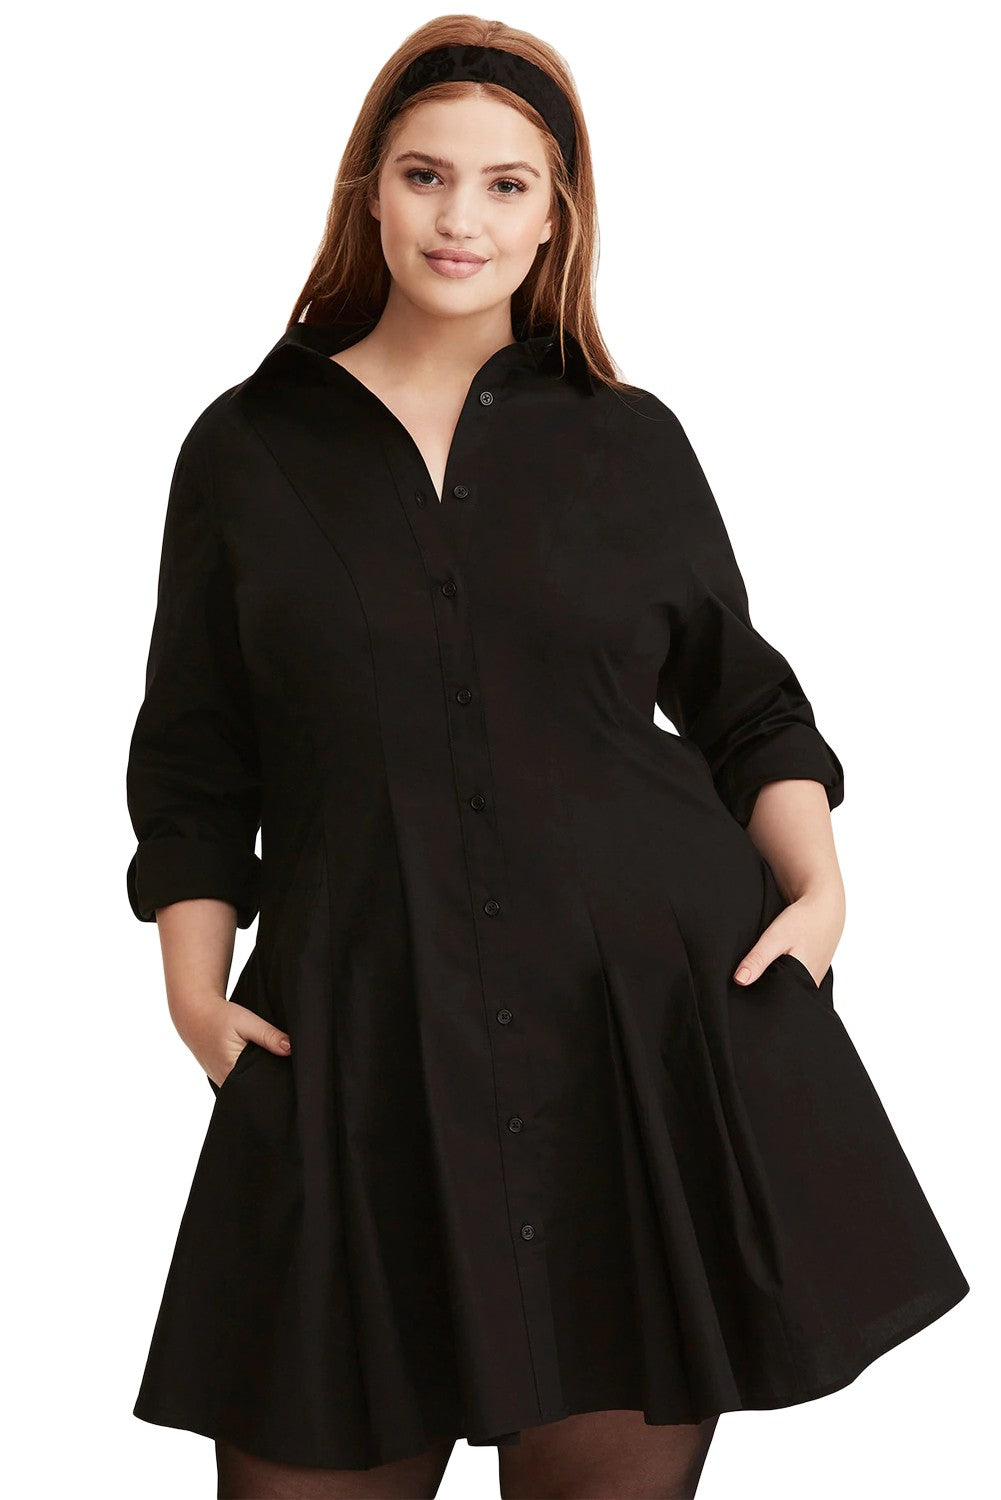 Black Plus Size Shirt Dress – Large Elegance